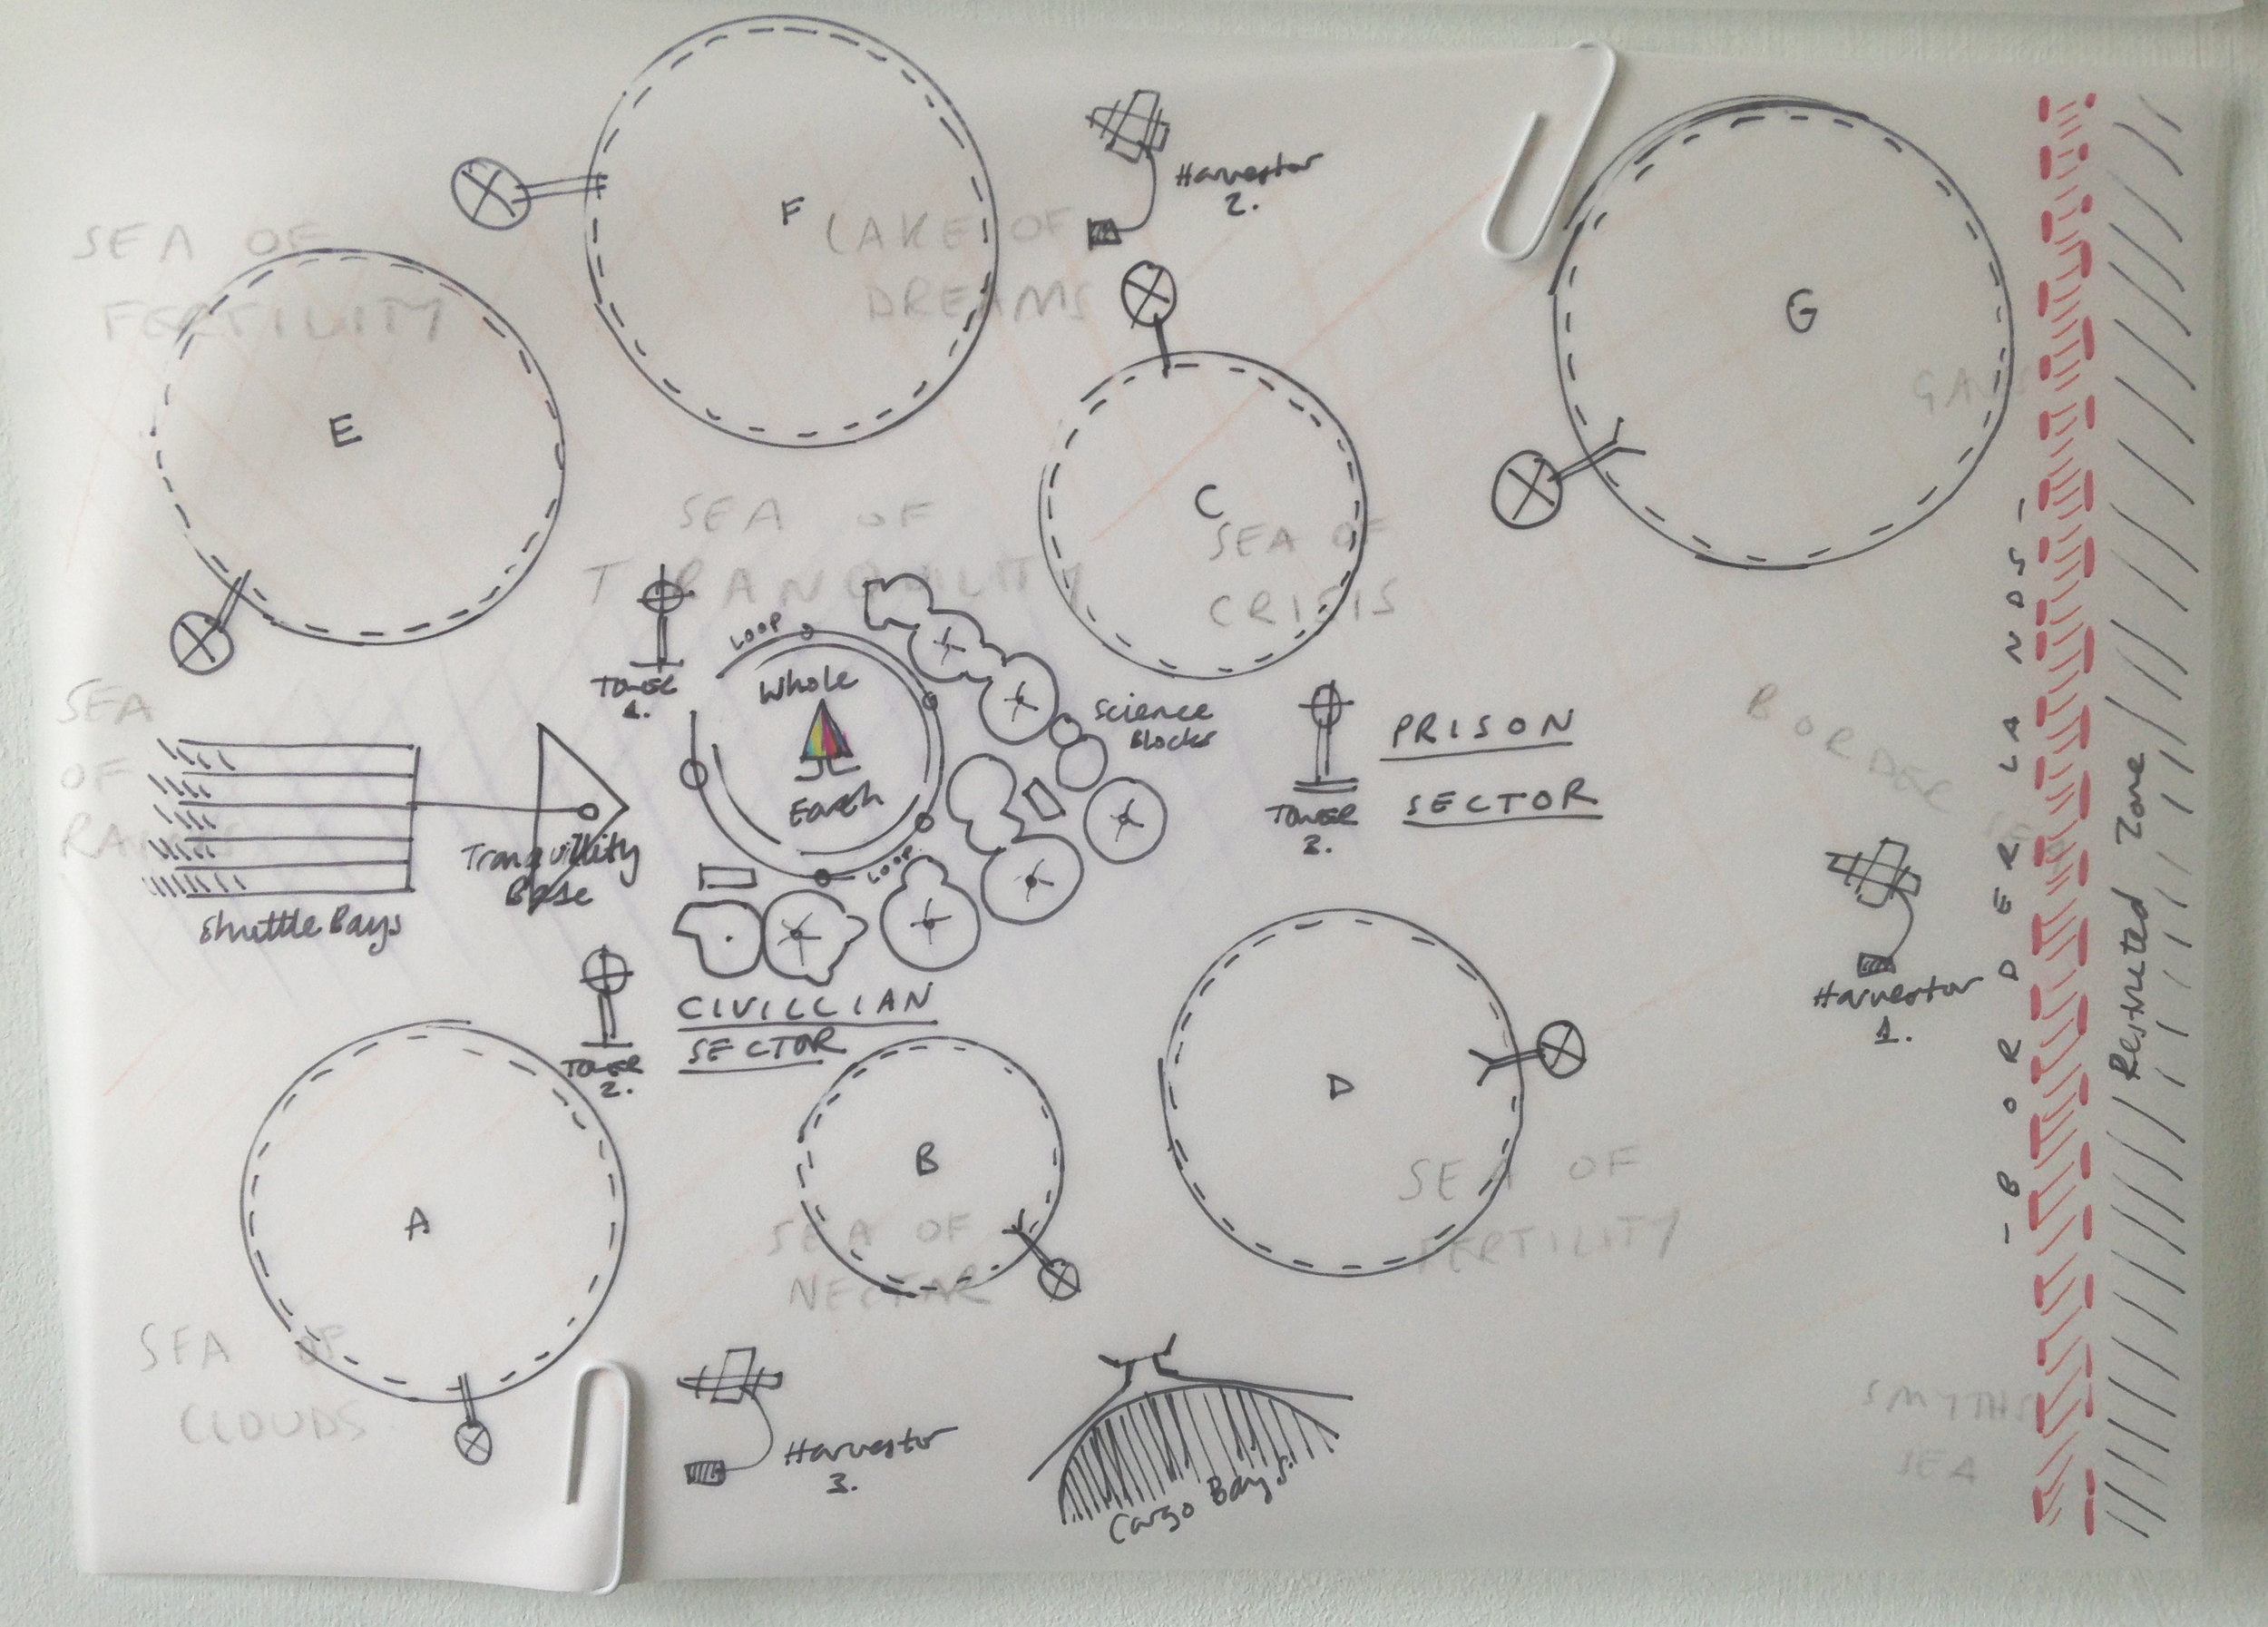 The map of the Lunar Inc. base that I used to plot the movements of characters in the book.